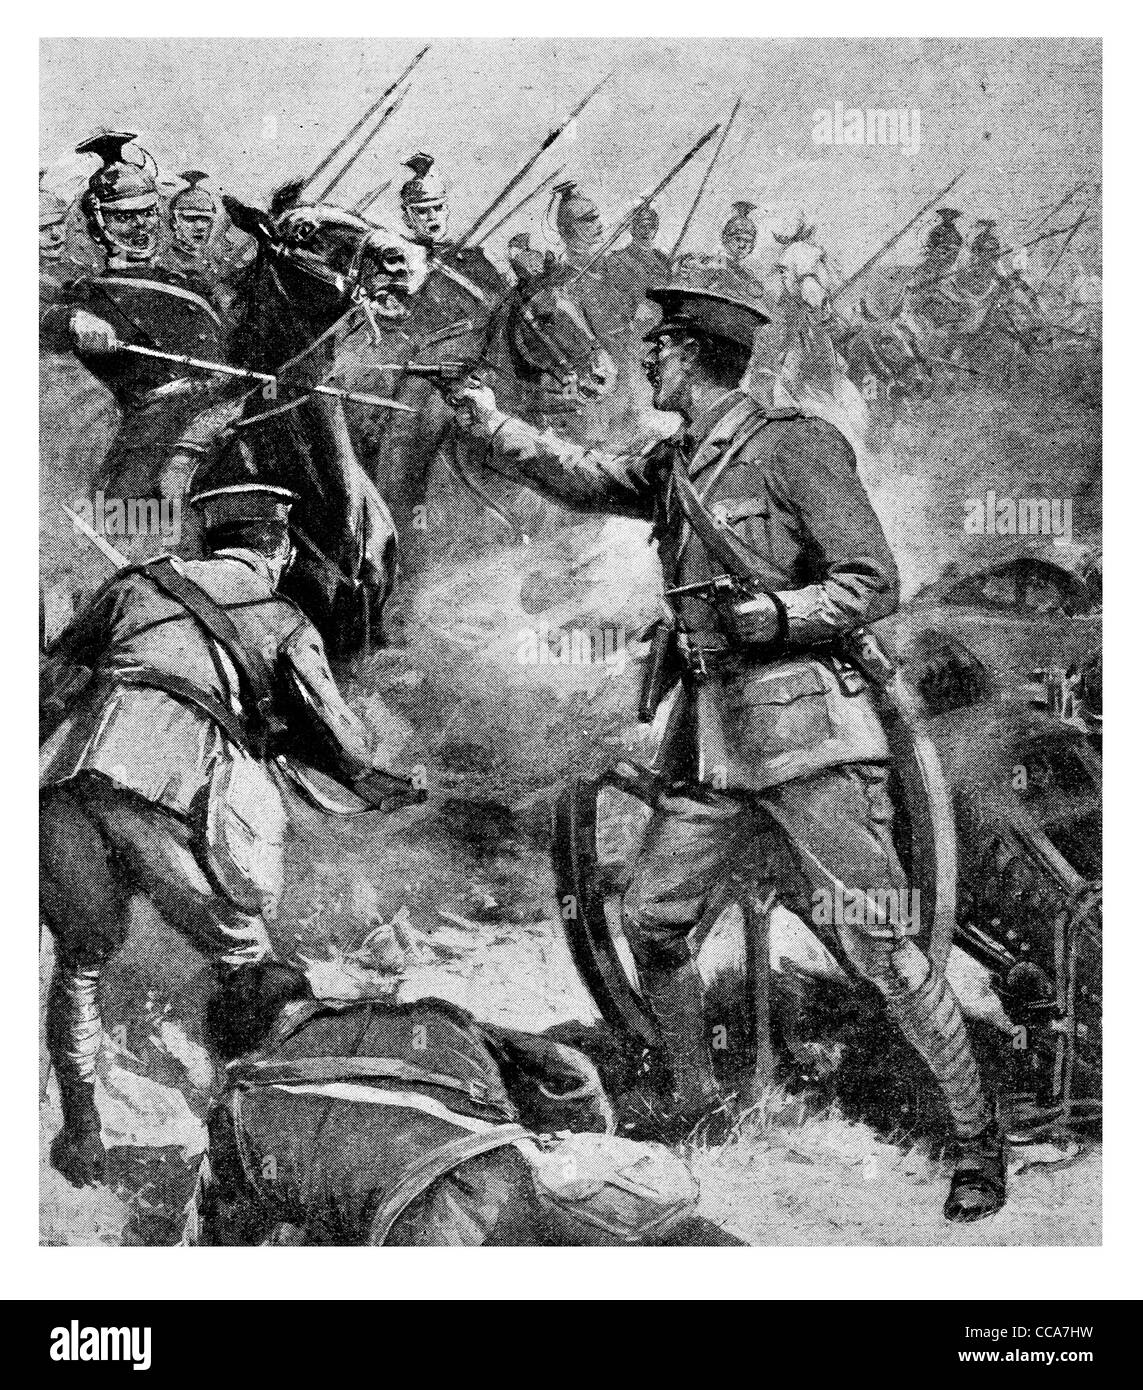 No surrender British artillery officer attacked by 3000 Uhlans Uhlan cavalry Tournai Aug 26th 1914 bravery brave - Stock Image